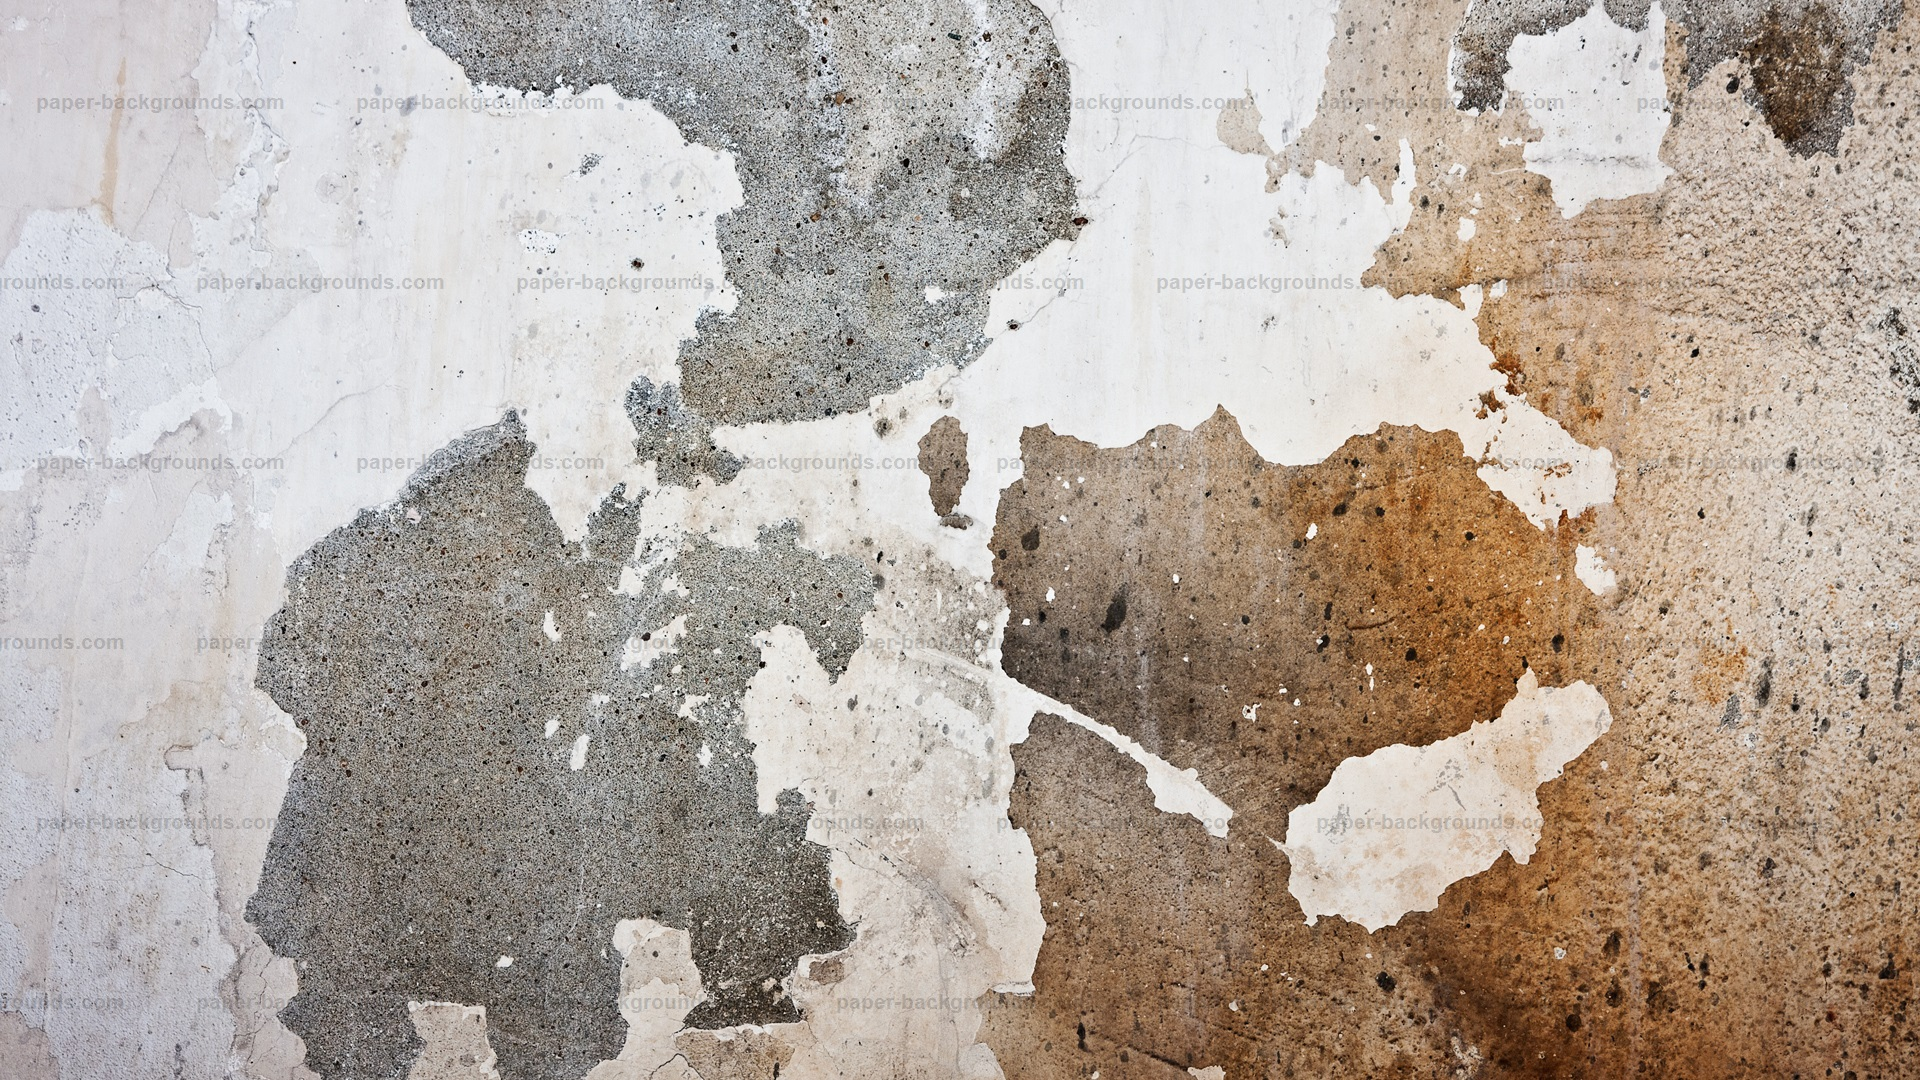 Paper backgrounds grunge concrete wall texture hd for Old concrete wall texture